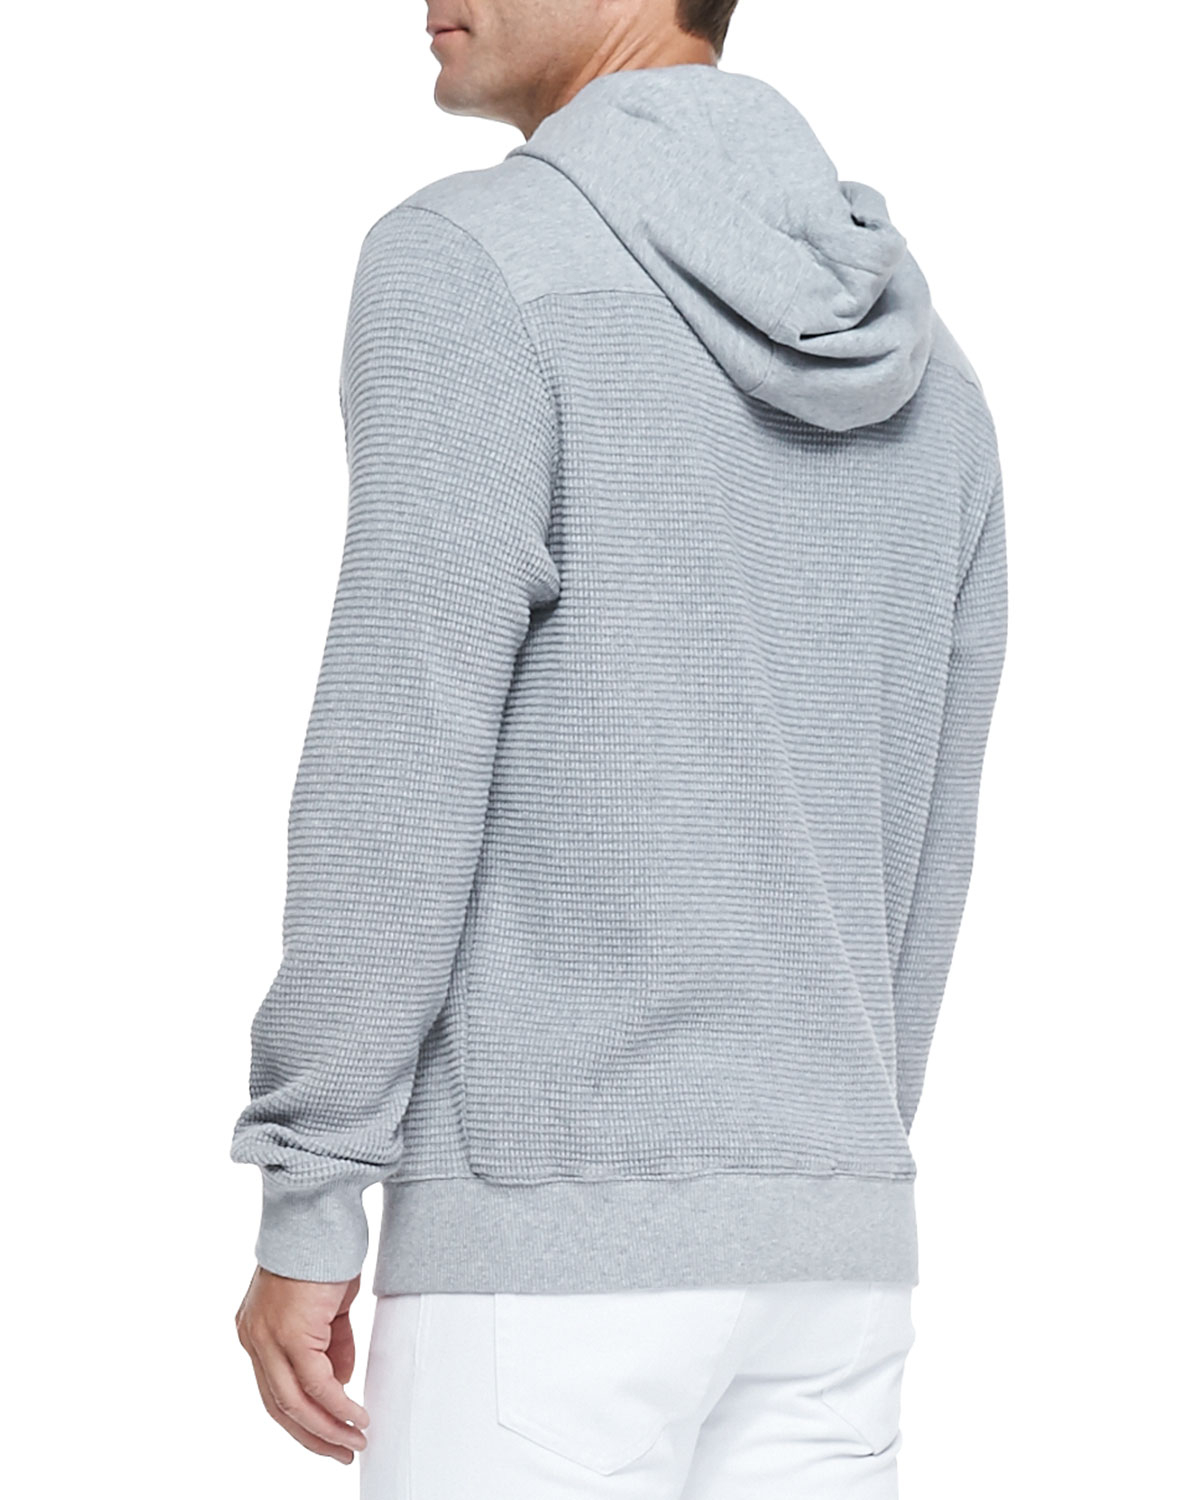 Michael kors Waffle-knit Pullover Hoodie in Gray for Men | Lyst